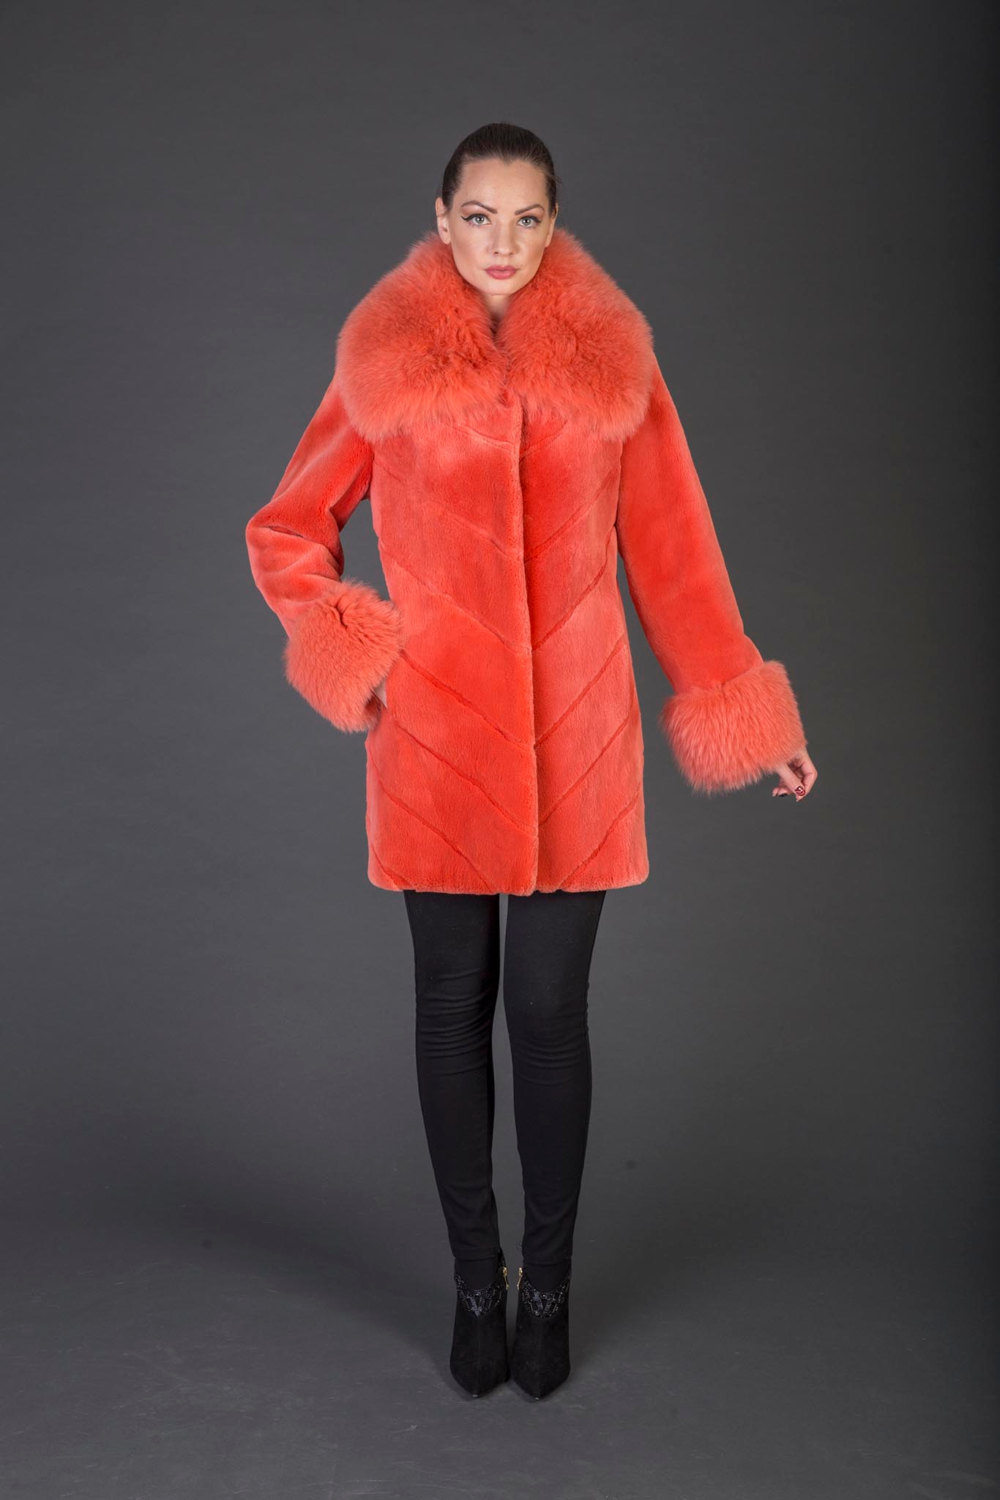 Primary image for Luxury gift/Orange Beaver Fur Coat/Fox collar and cuffs/Fur jacket /Wedding,or a